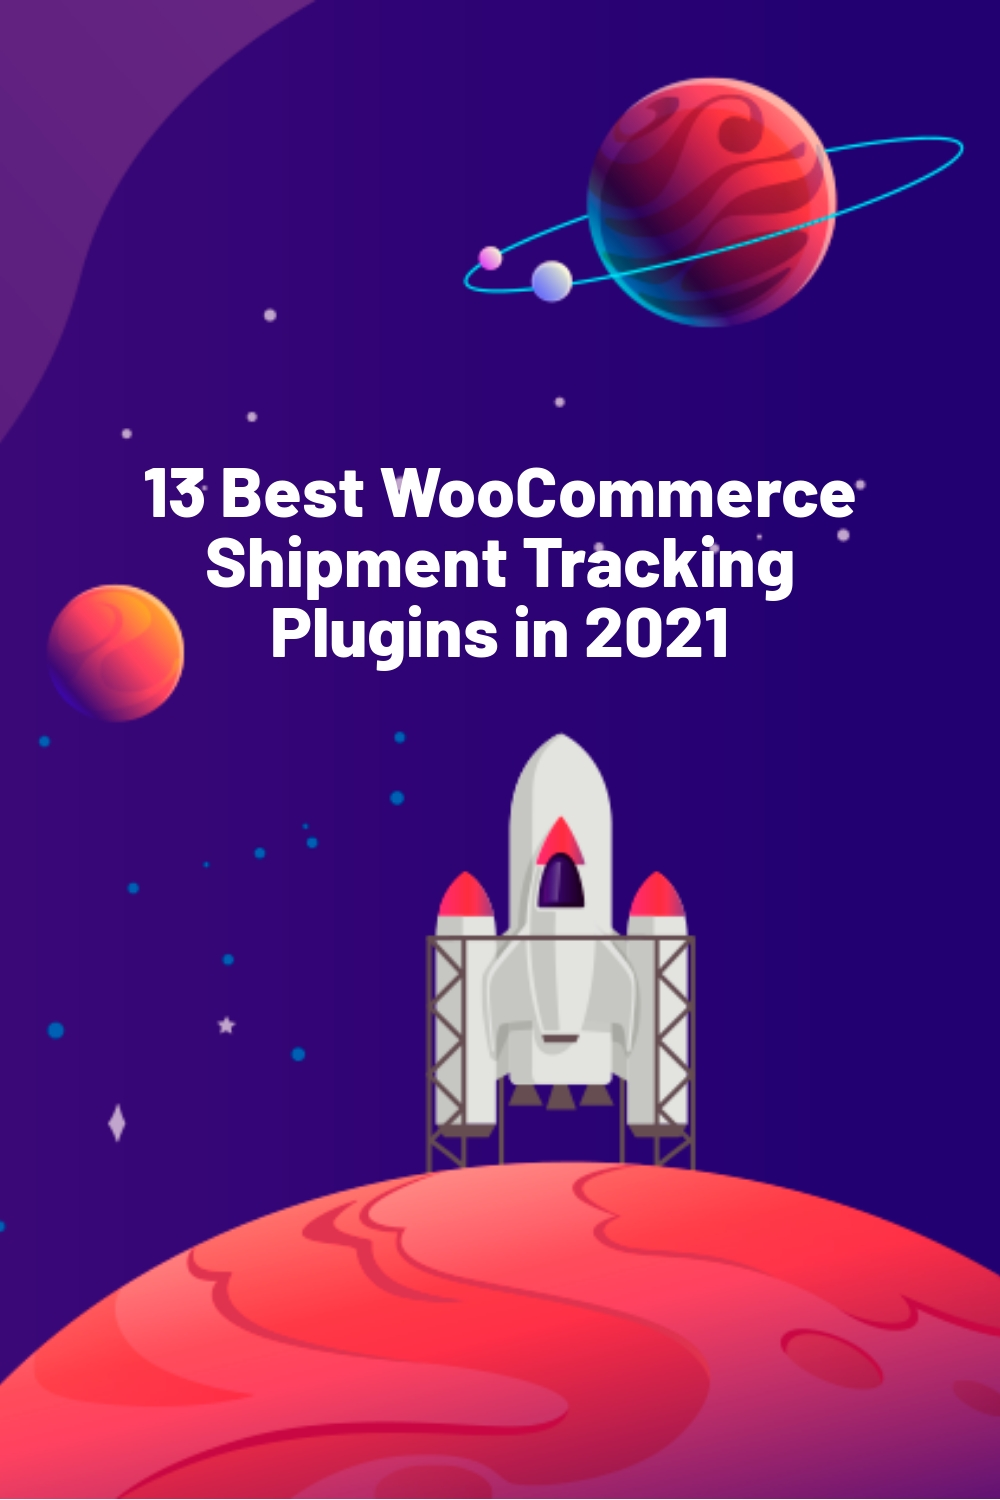 13 Best WooCommerce Shipment Tracking Plugins in 2021